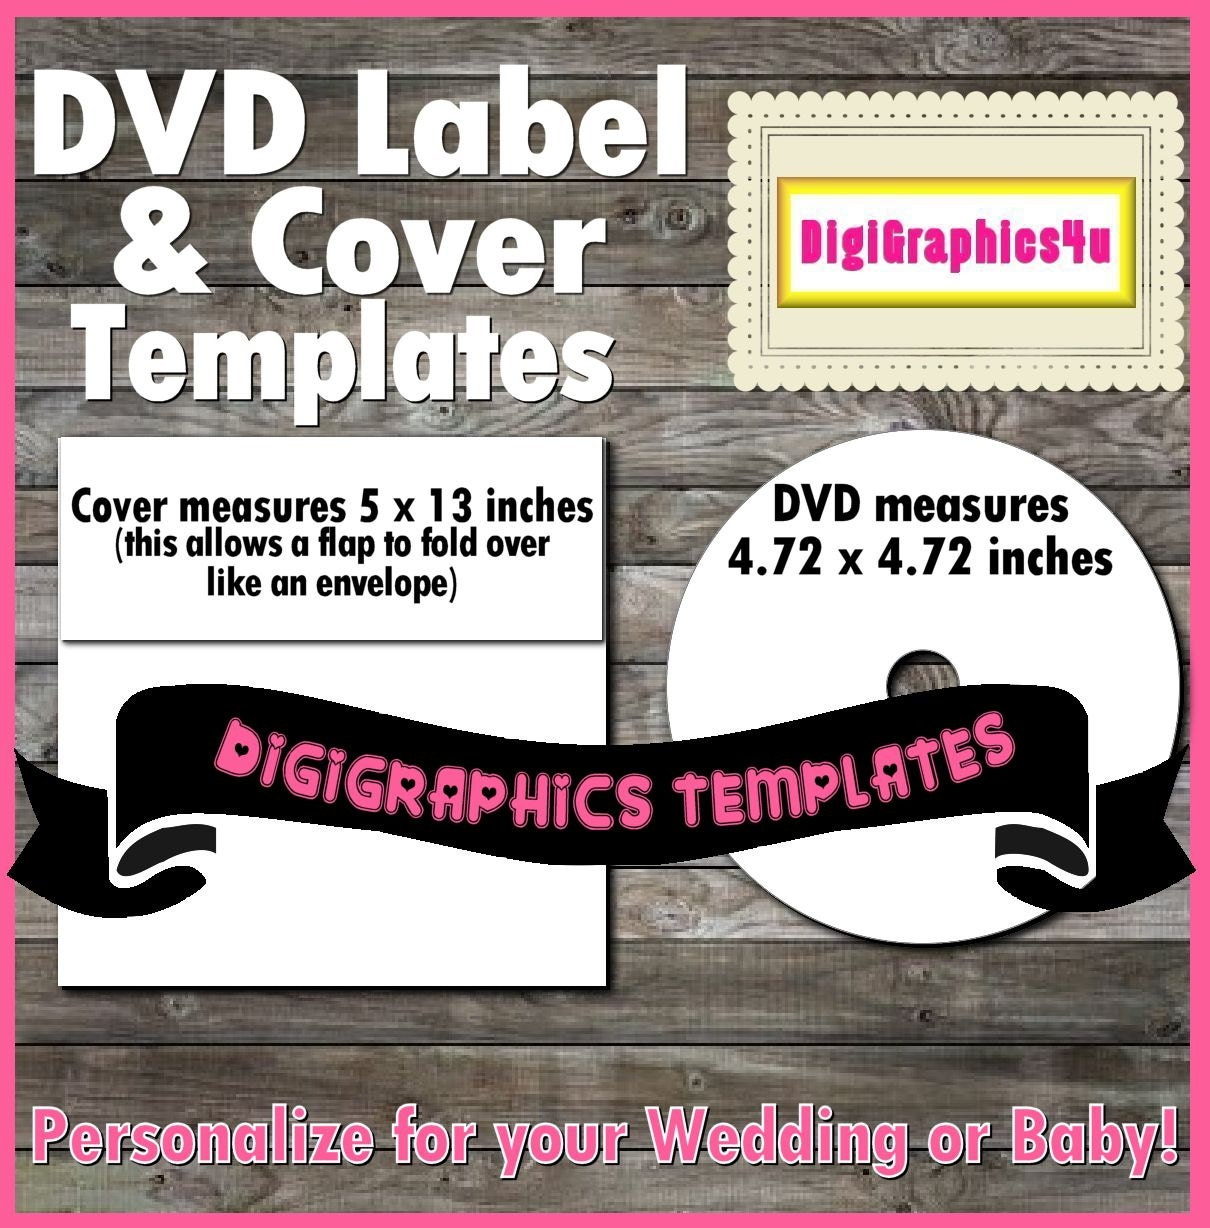 It is an image of Old Fashioned Printable Dvd Cover